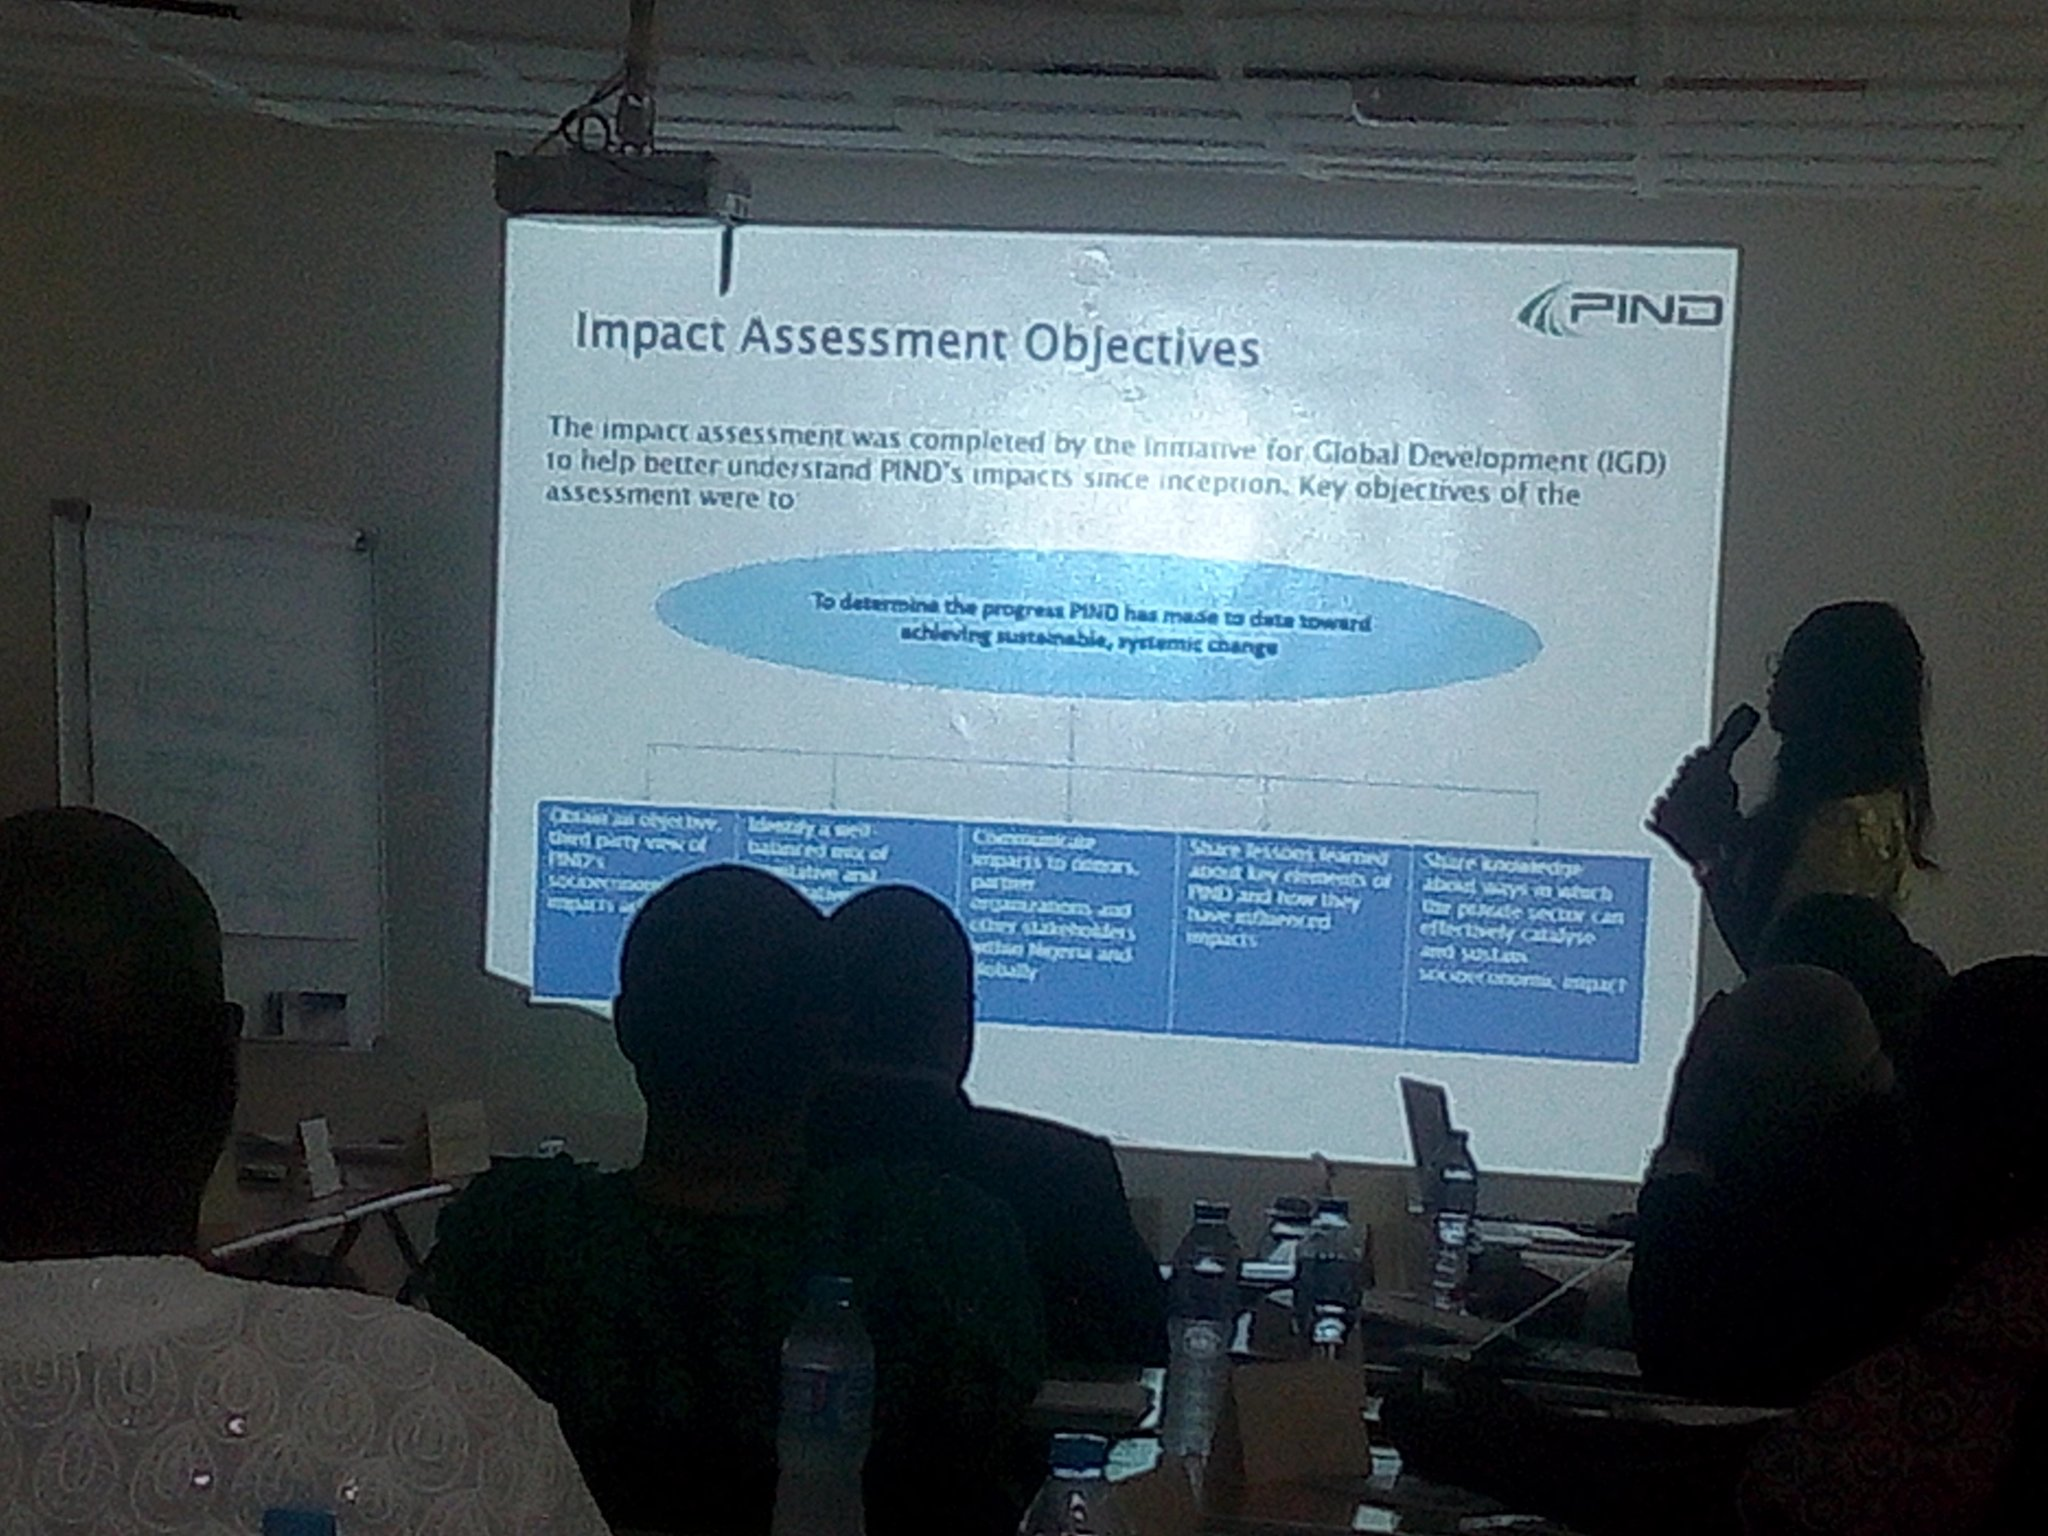 @sholadearie M&E manager explains the PIND approach.  #NDImpact https://t.co/wk01HdheRW